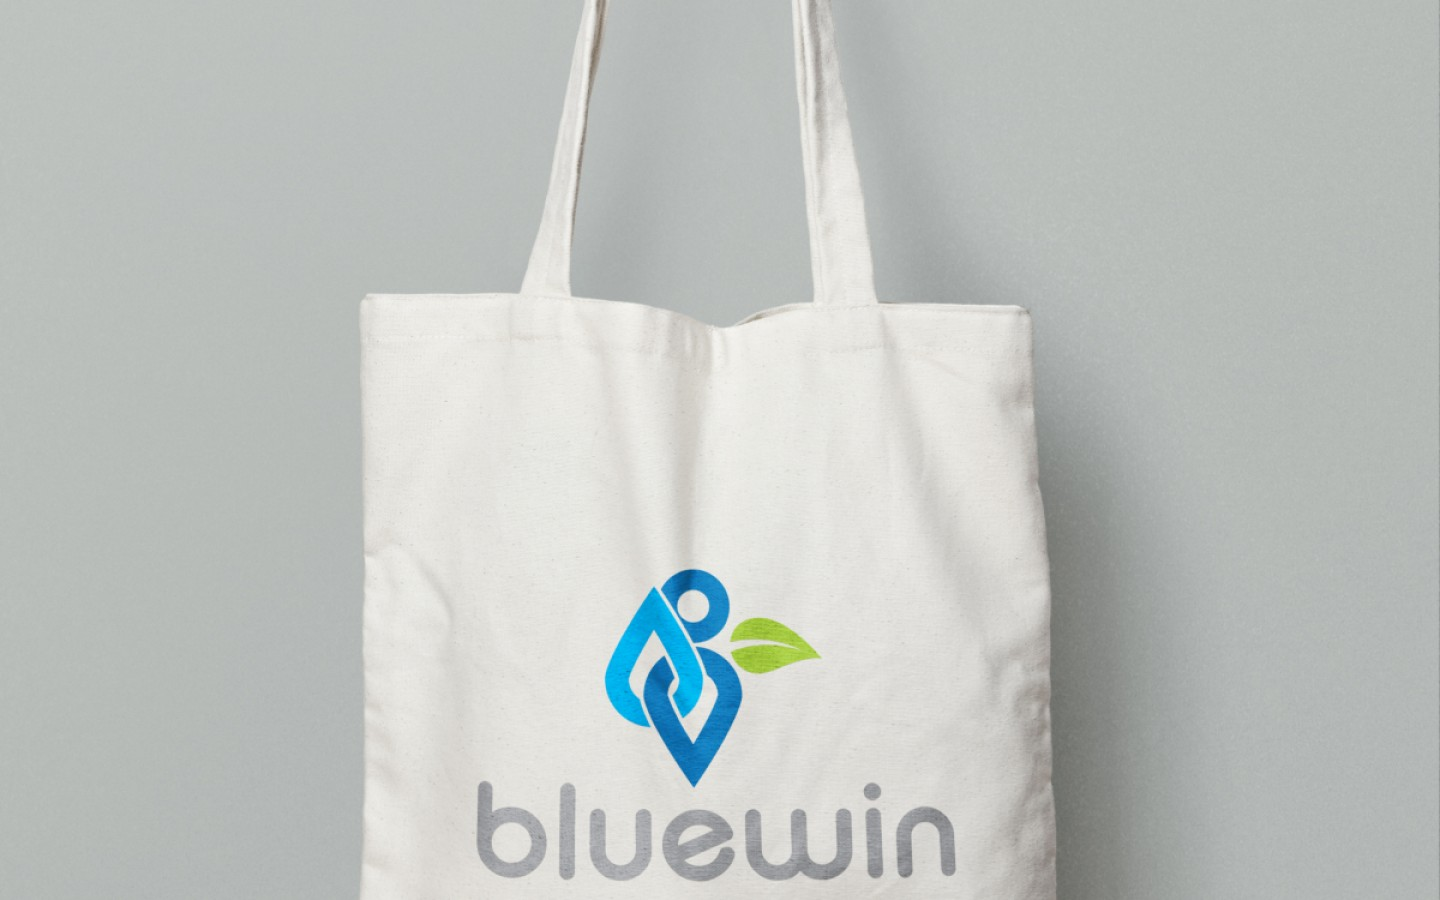 VISUAL IDENTITY - BLUEWIN